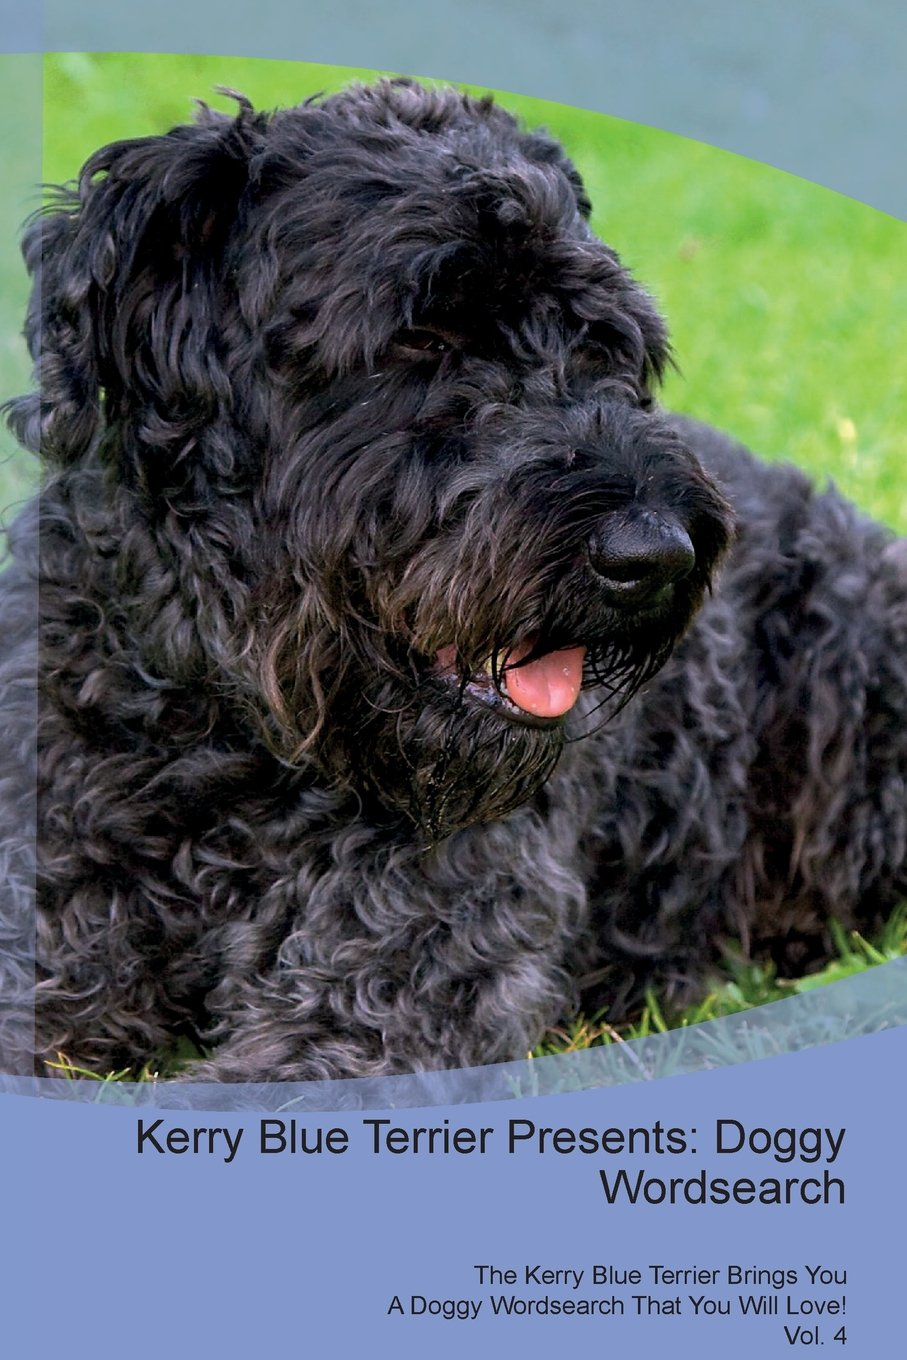 Kerry Blue Terrier Presents: Doggy Wordsearch the Kerry Blue Terrier Brings You a Doggy Wordsearch That You Will Love! Vol. 4 pdf